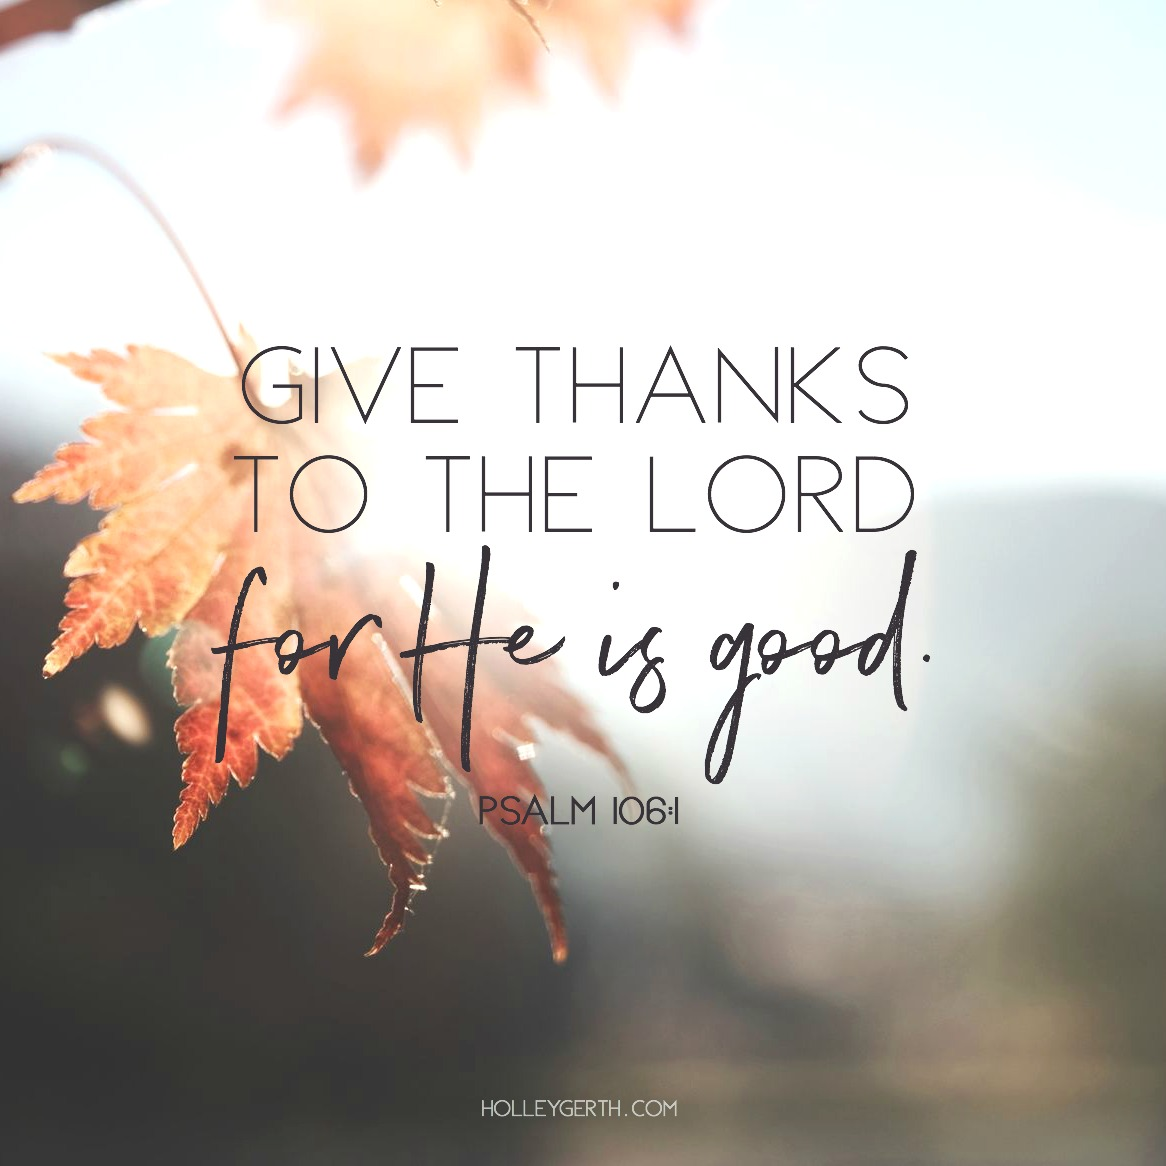 Give thanks to the Lord for He is good. Psalm 106:1